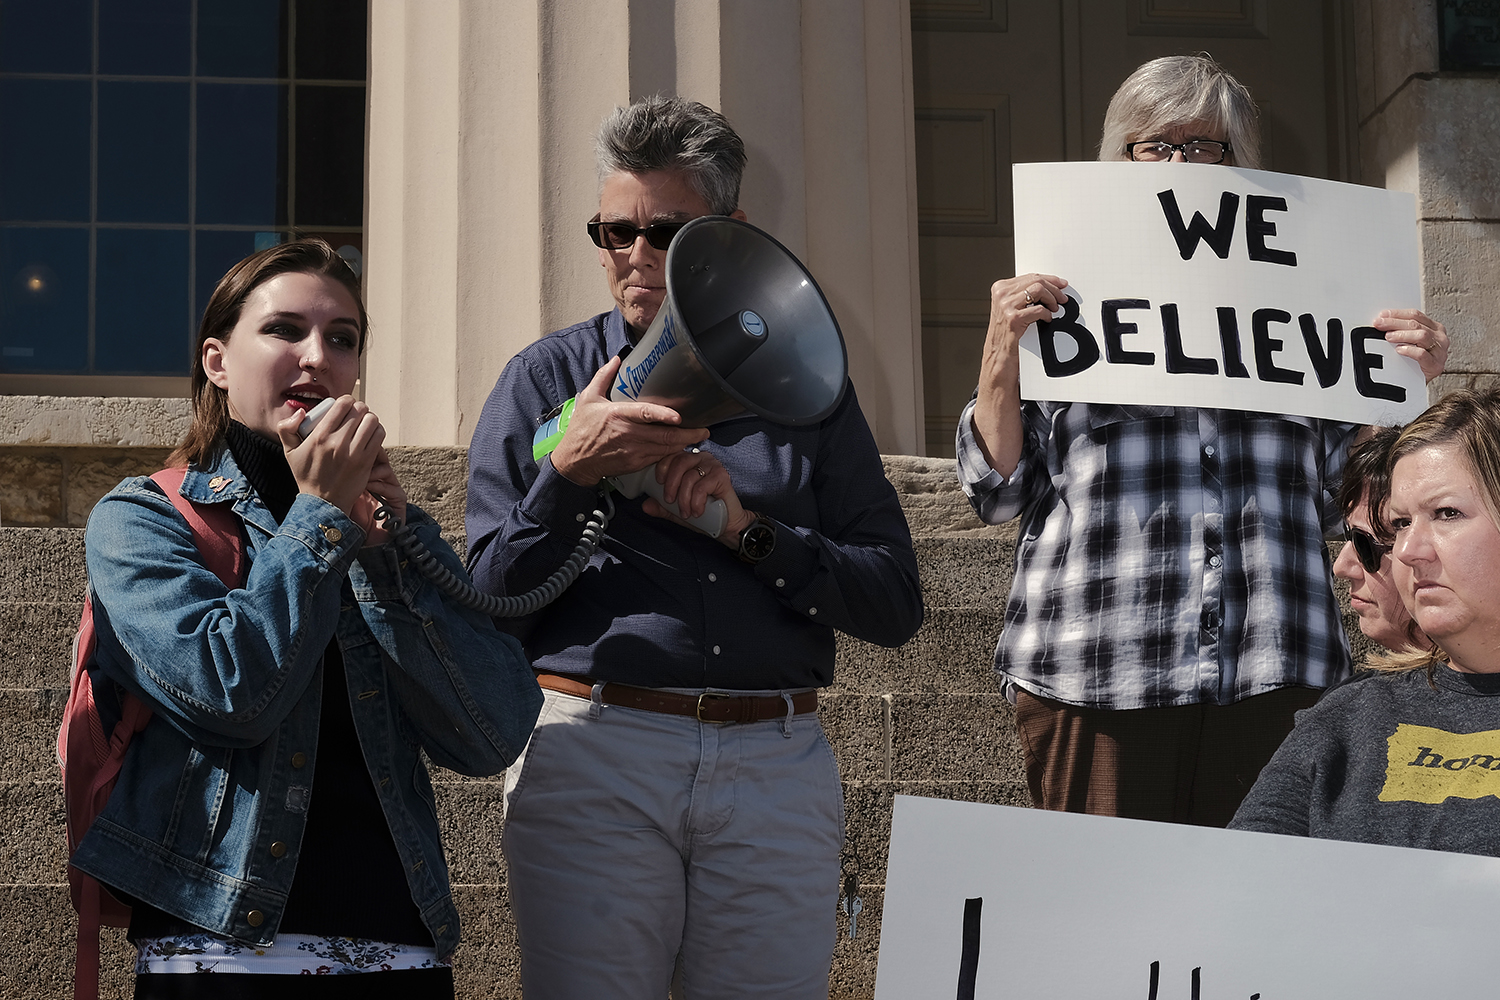 Community members gather on the steps of the Old Capitol in Iowa City on Thursday, Sept. 27, 2018 to protest the nomination of Judge Brett Kavanaugh to the Supreme Court. Protesters spoke in support of victims of sexual violence and shared personal stories about coming forward as victims of sexual violence.